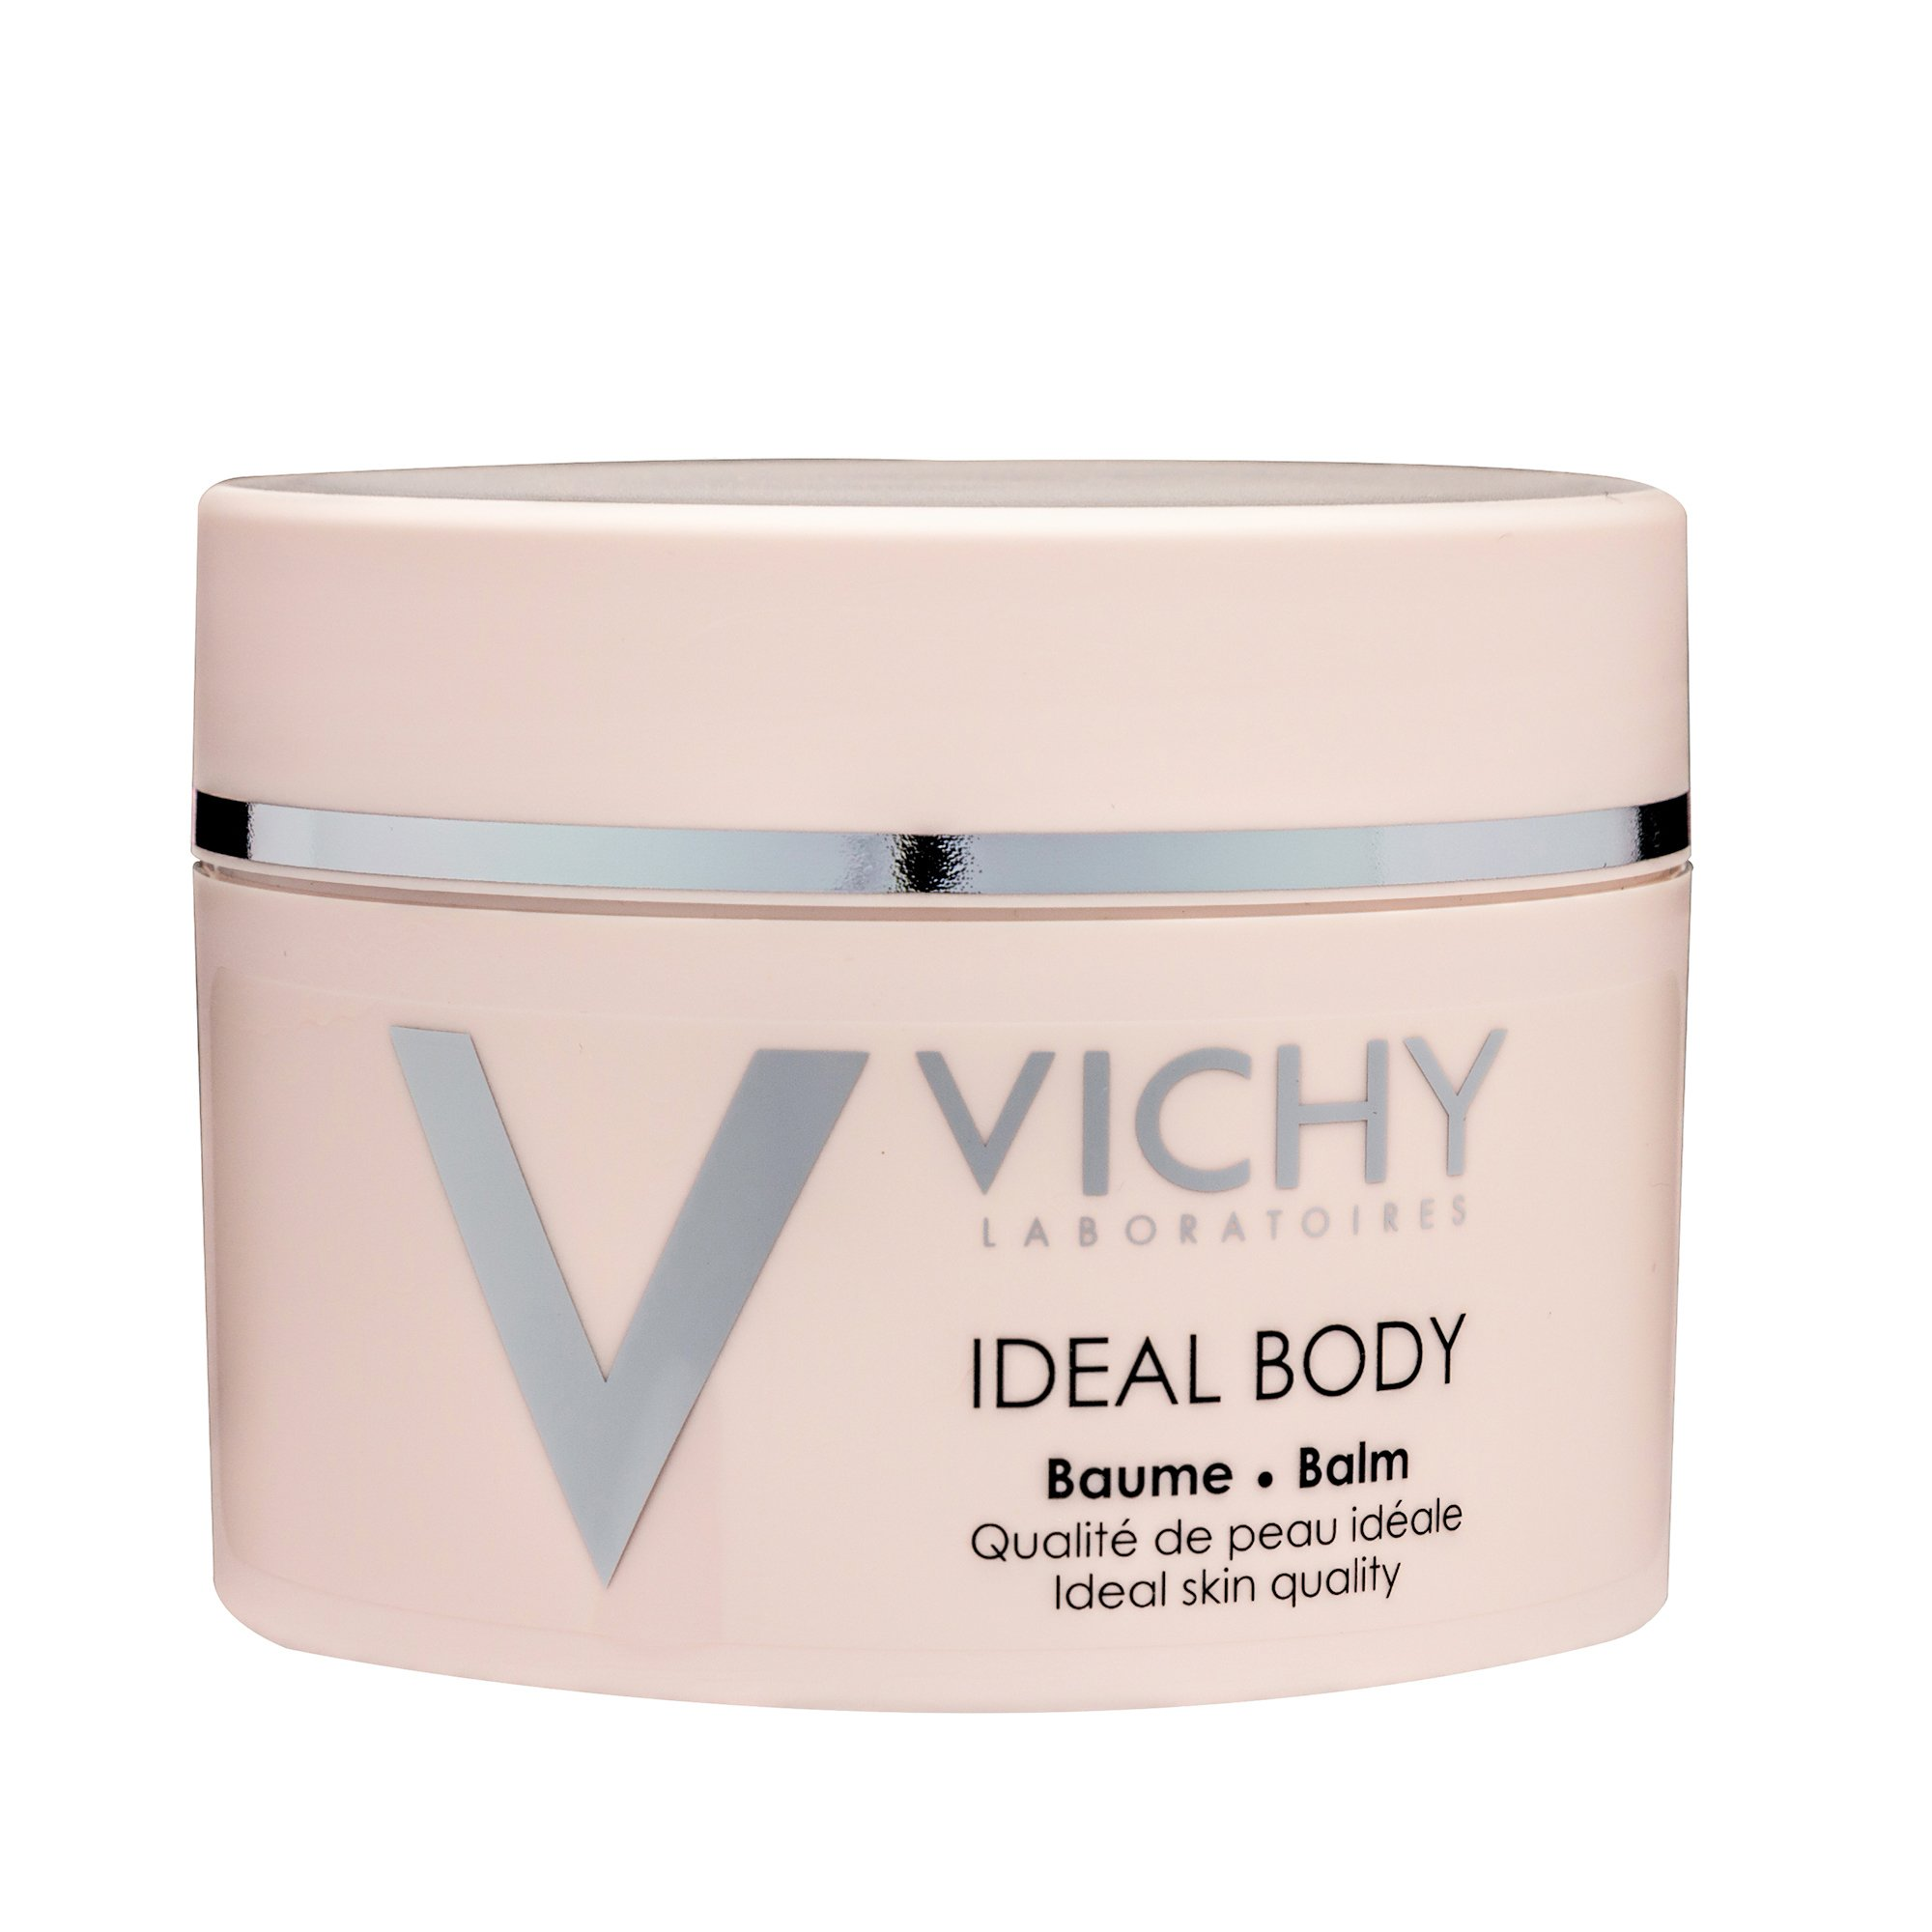 Vichy Ideal Body